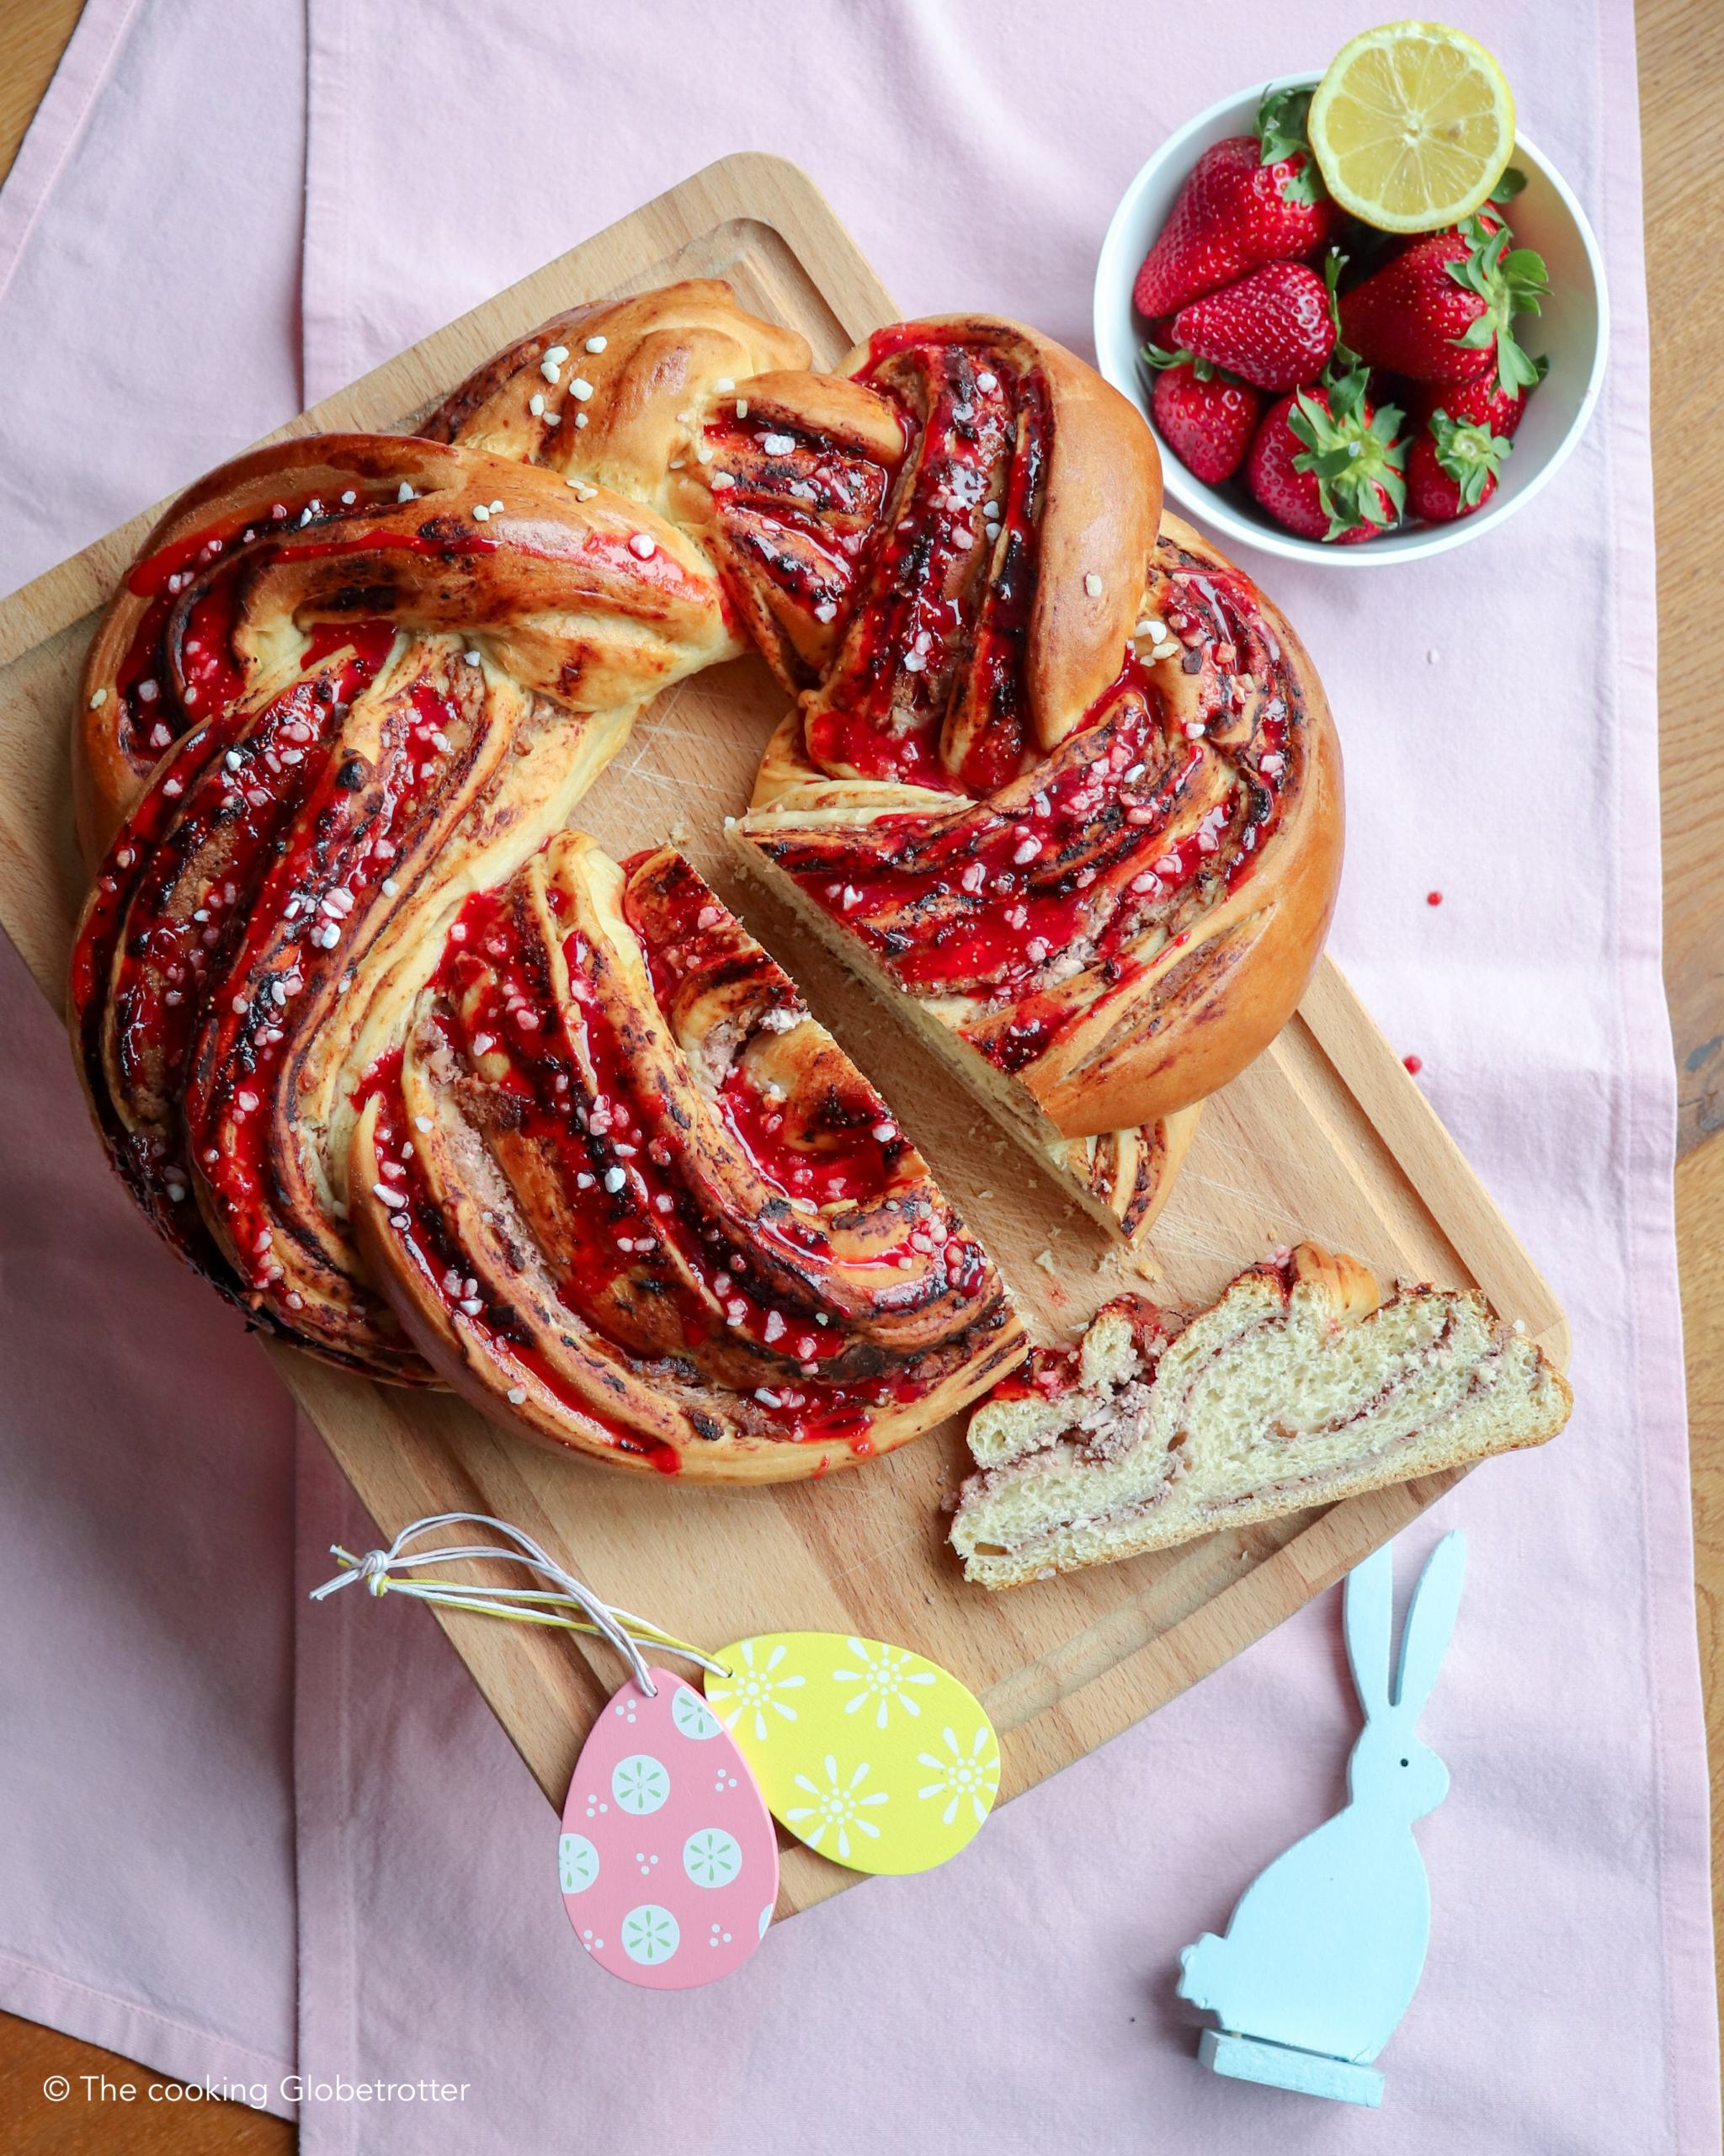 Index Austrian bread with cheese filling Krainz braided bread topfen cheese easter recipe